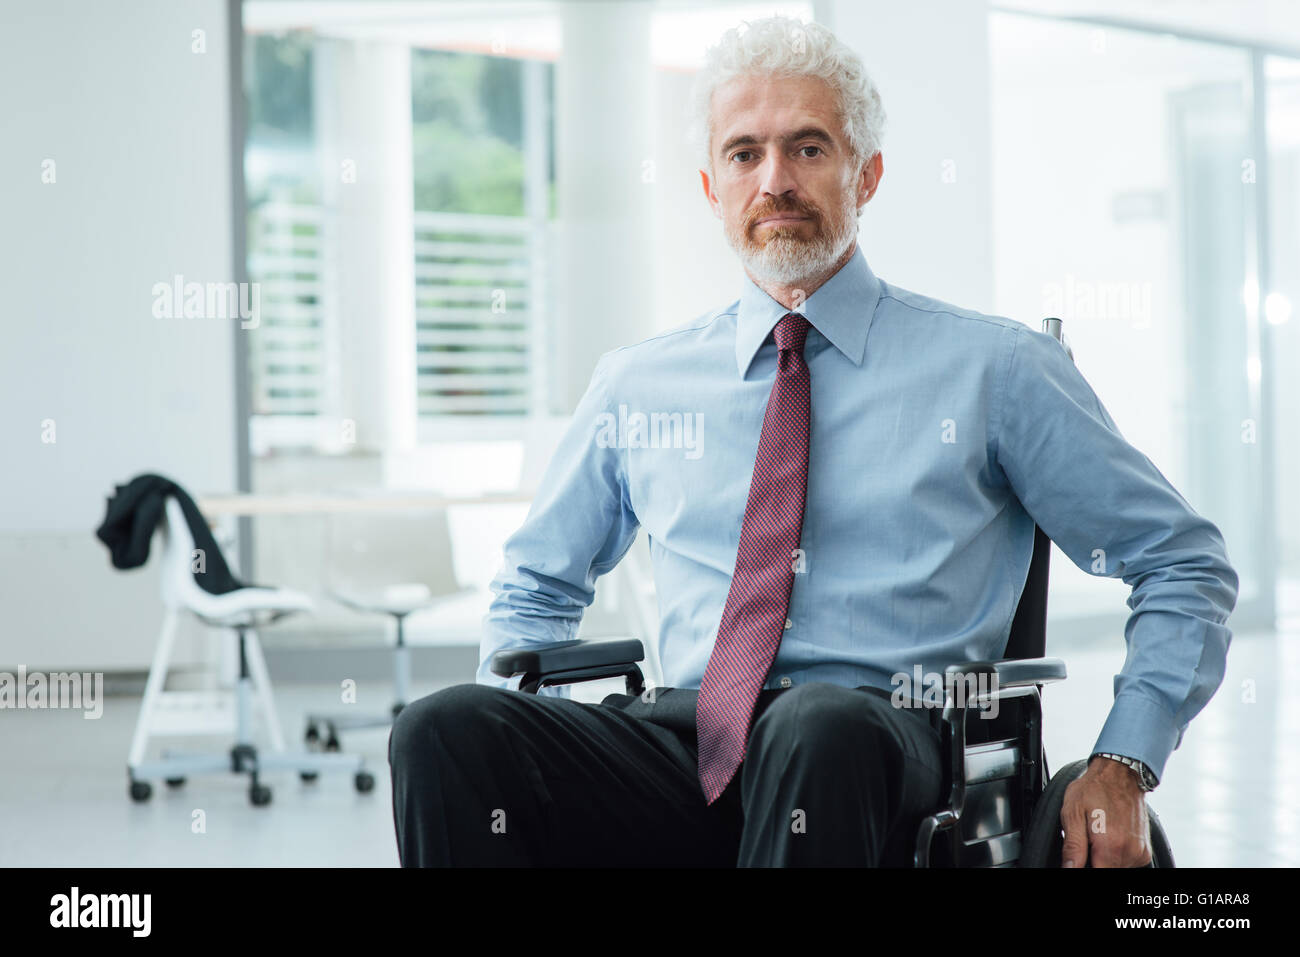 Successful confident businessman in wheelchair smiling at camera, career and disability overcoming concept - Stock Image